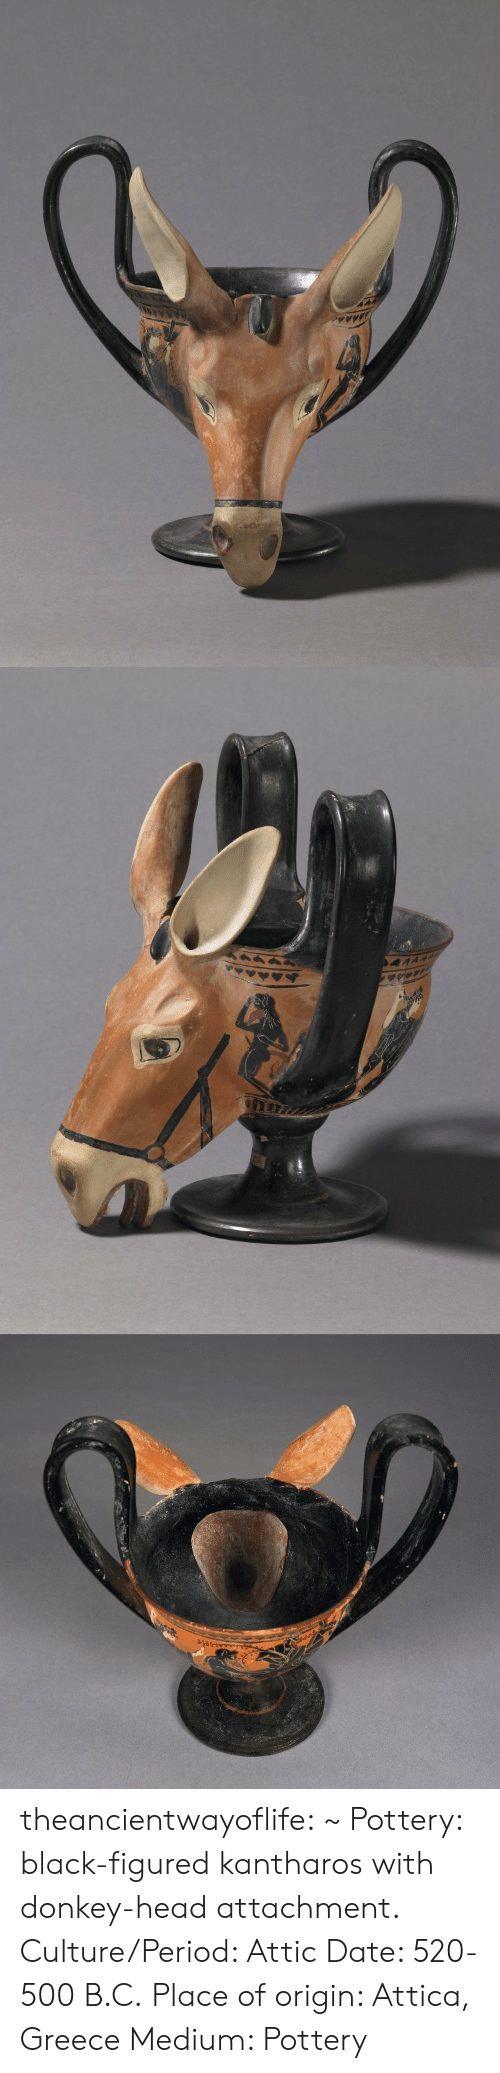 Attachment: theancientwayoflife:  ~ Pottery: black-figured kantharos with donkey-head attachment. Culture/Period: Attic Date: 520-500 B.C. Place of origin: Attica, Greece Medium: Pottery